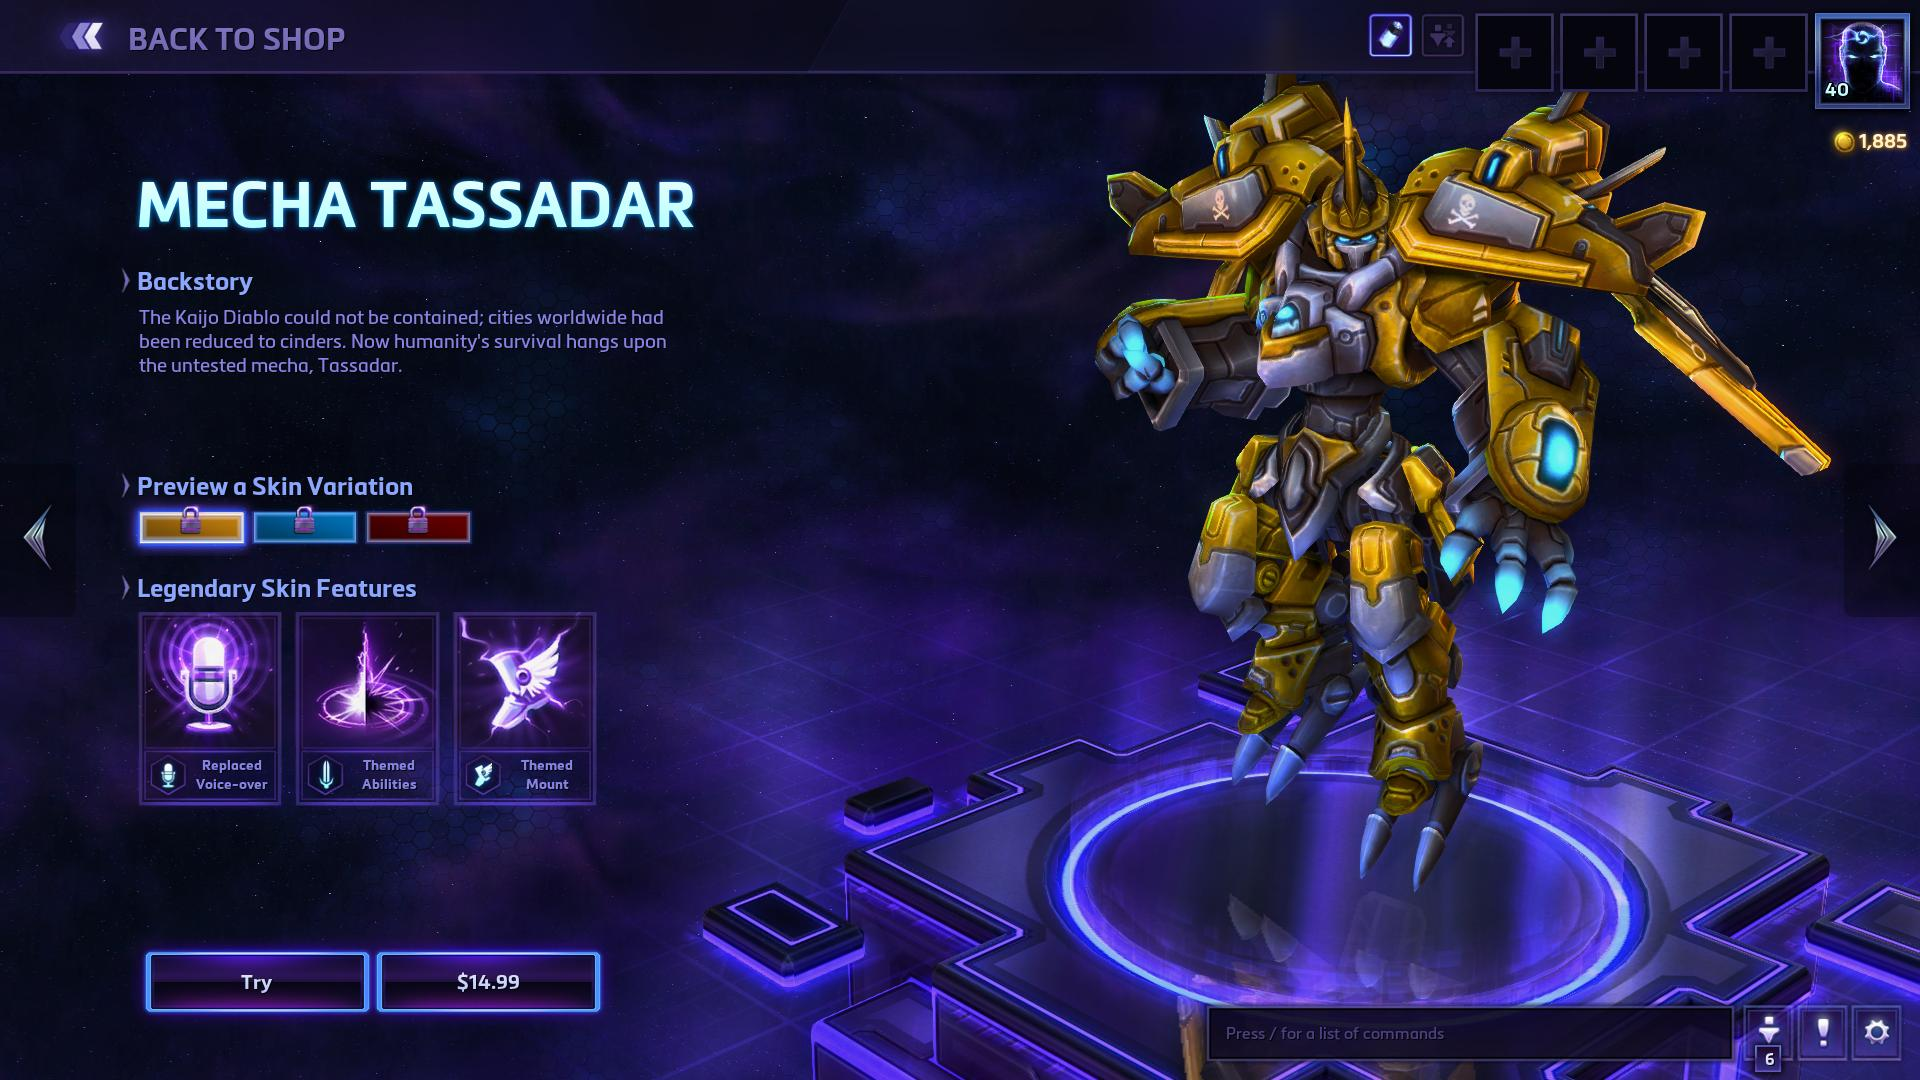 Best: Mecha Tassadar